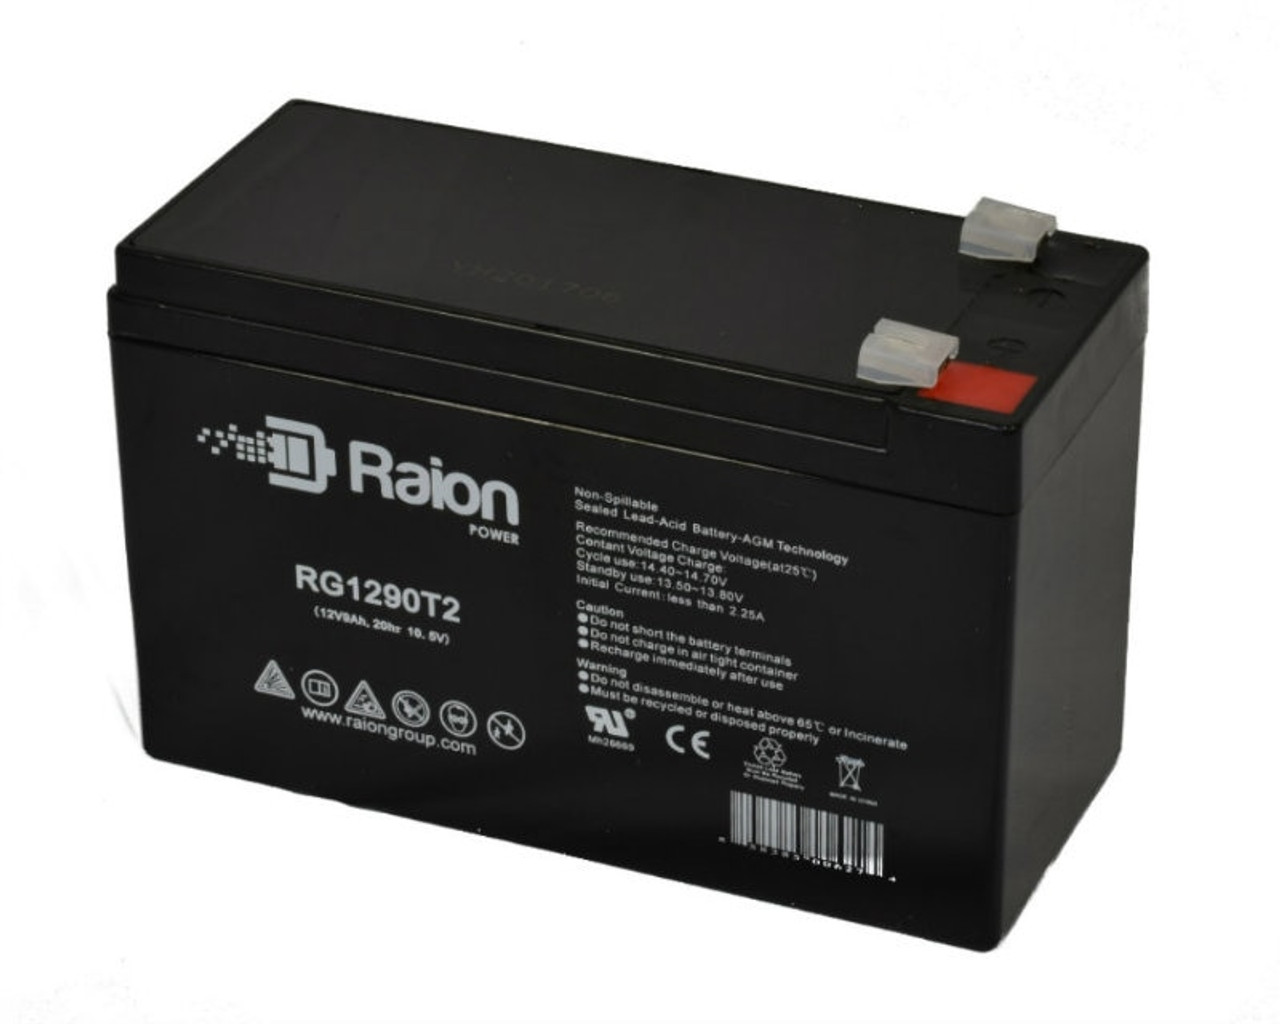 Raion Power RG1290T2 Replacement Battery for Potter Electric PFC-7500RG1290T2 Fire Alarm Control Panel